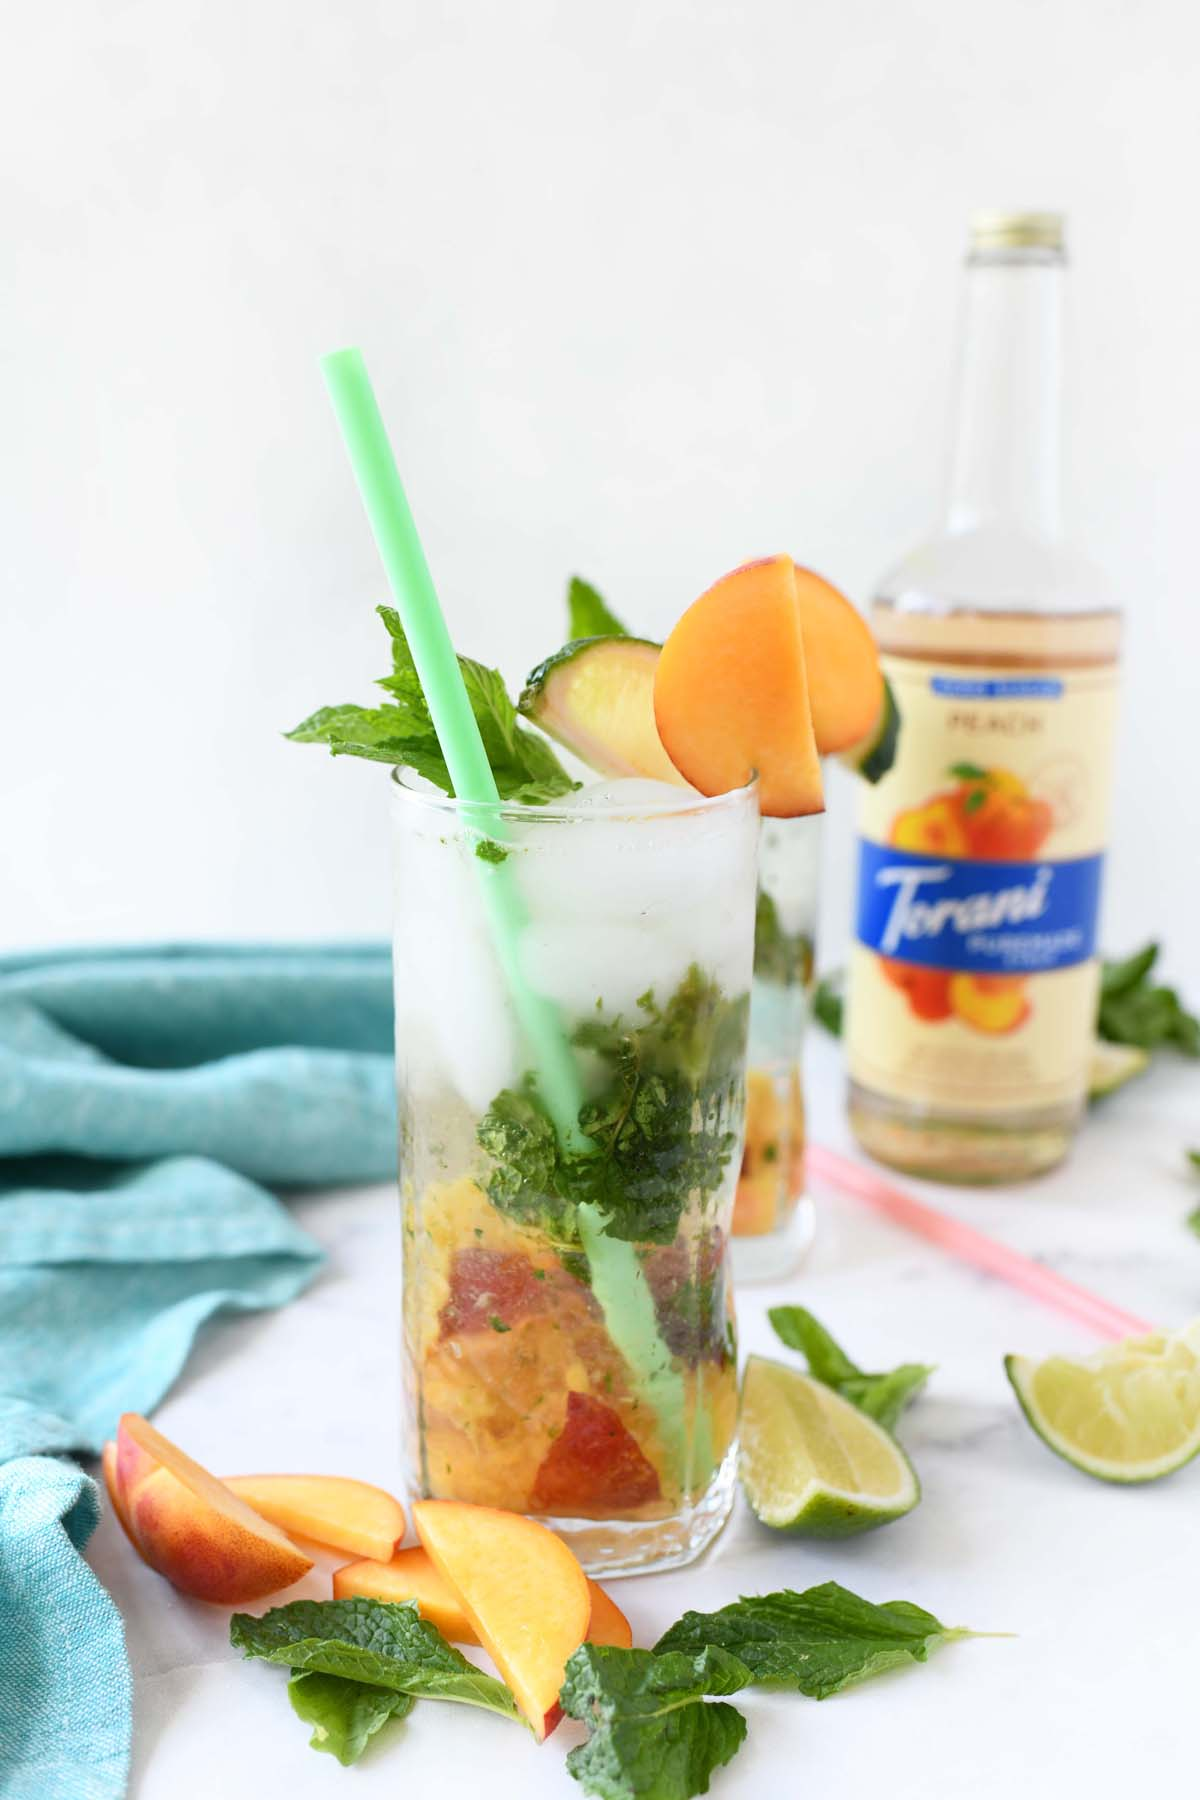 Mint Peachy Mojito with a green straw and fresh peach slices.